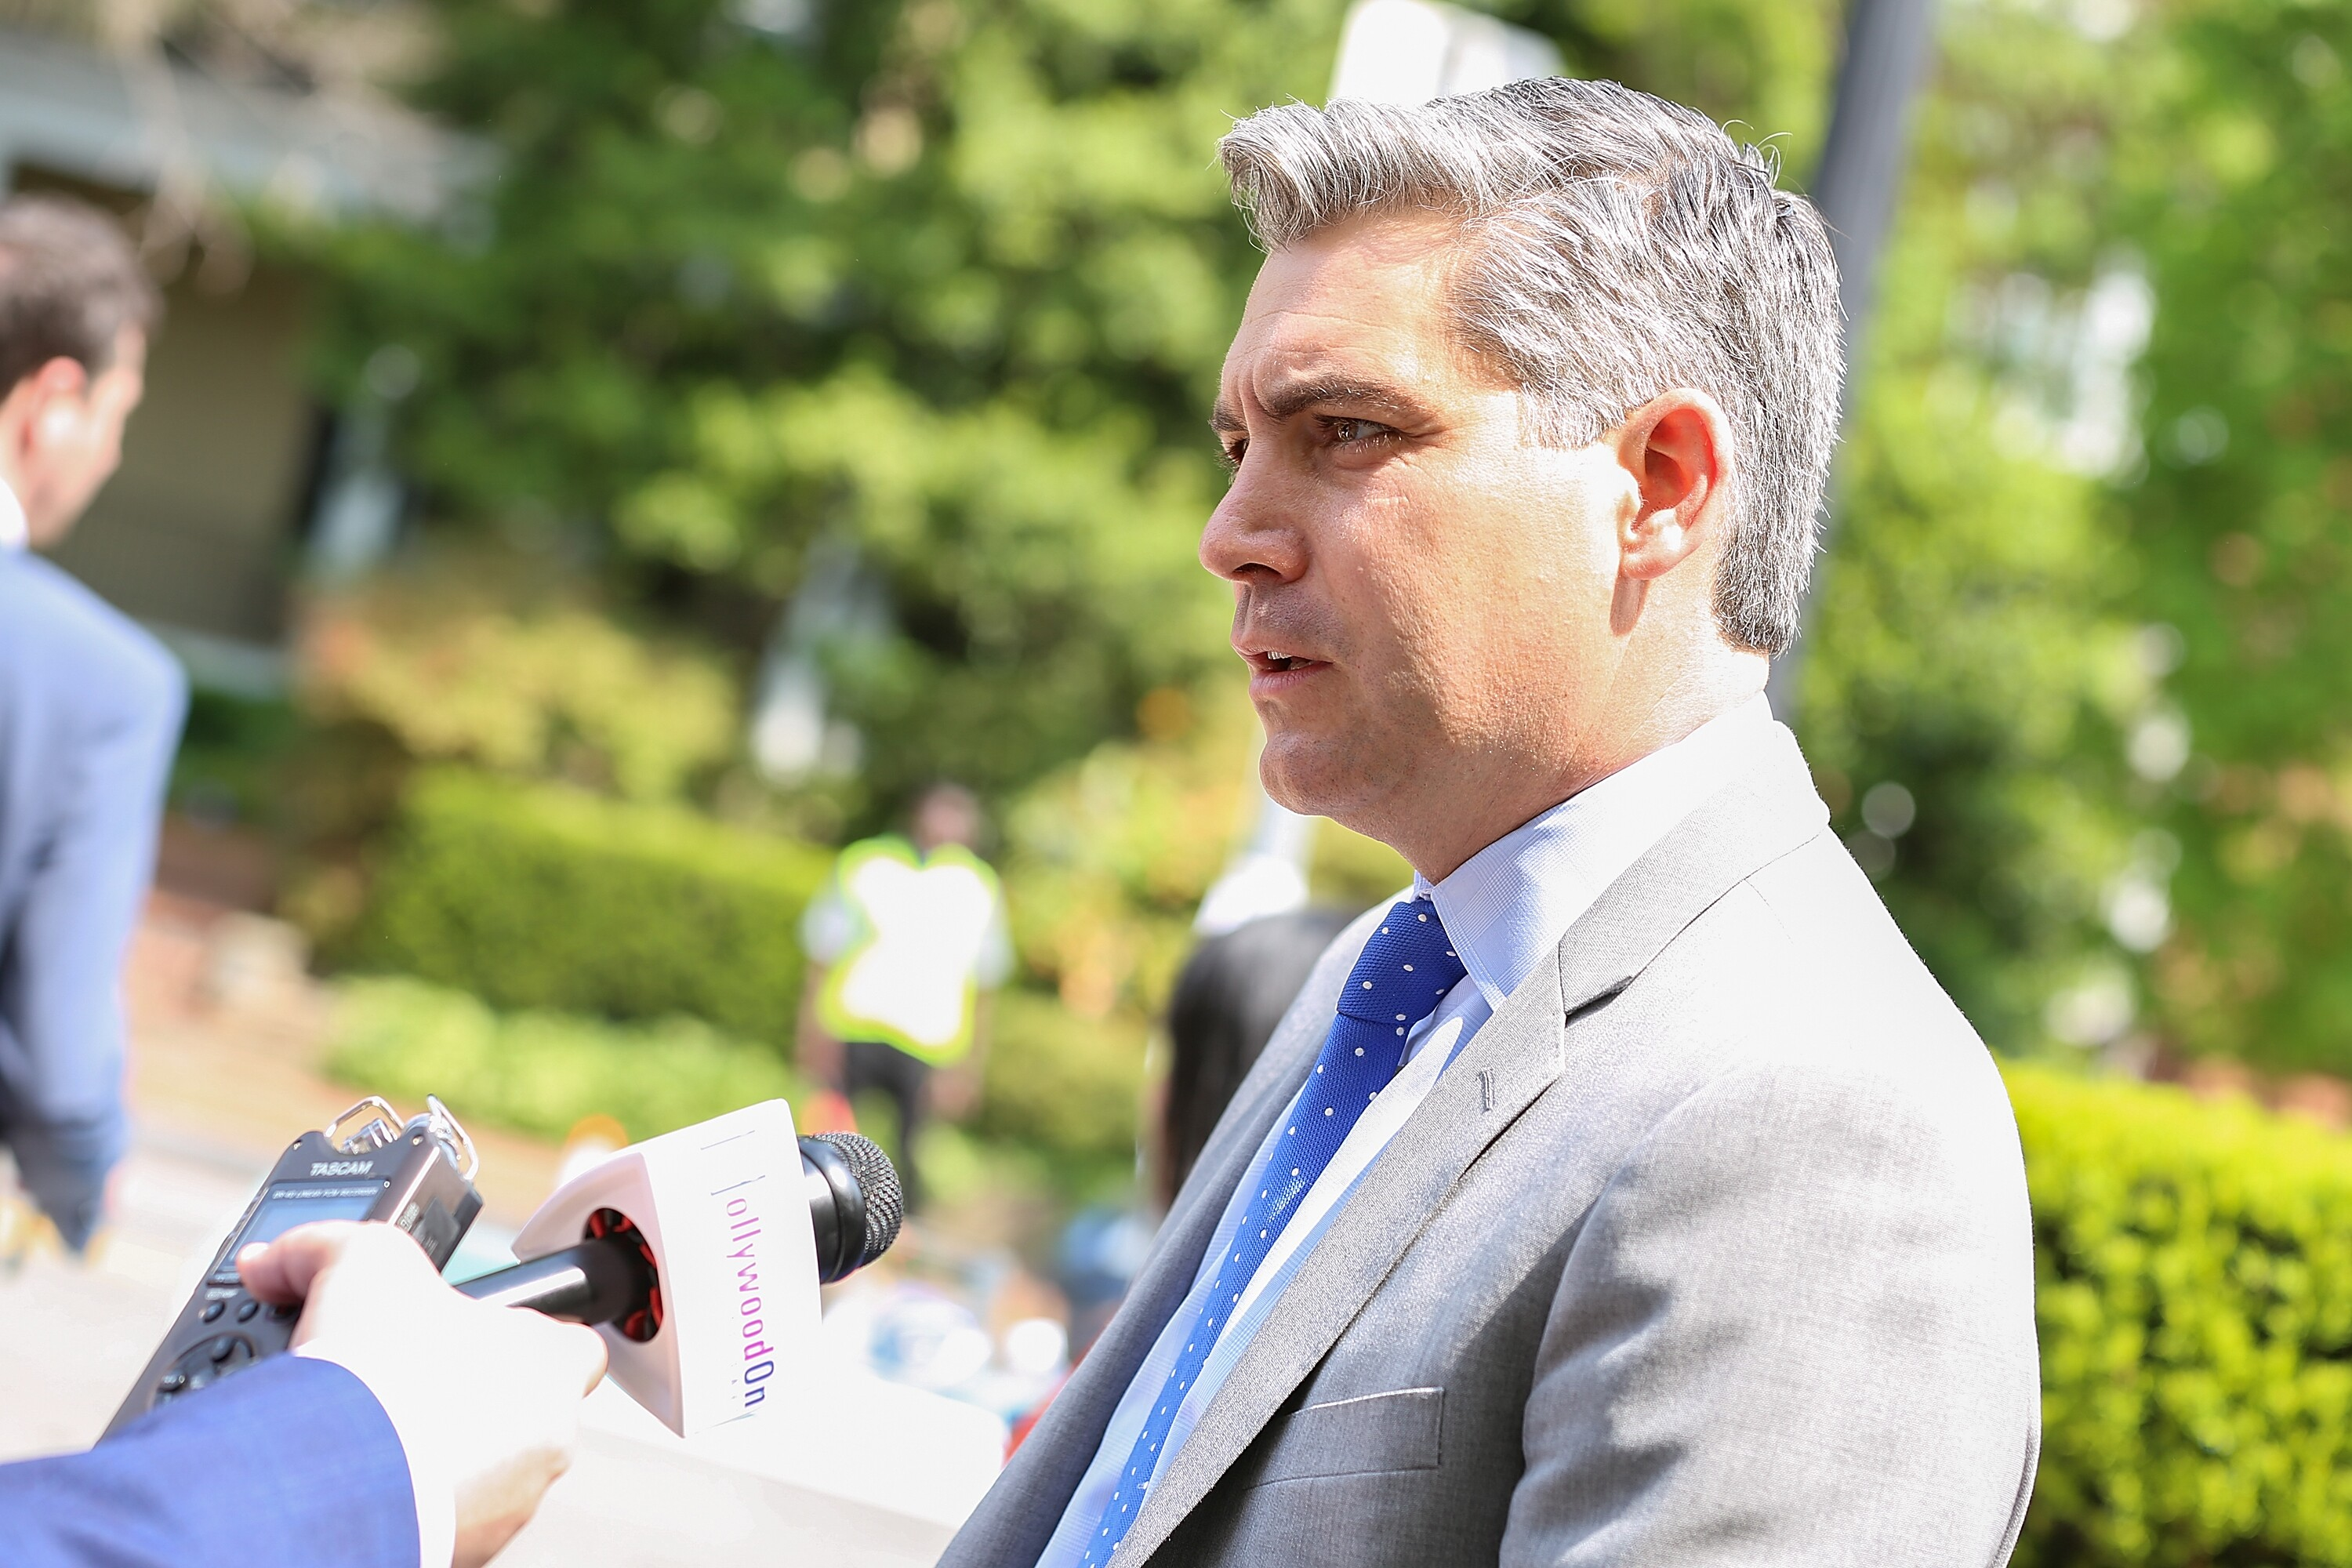 Acosta Gets His Press Pass Back, But Trump Is the Real Winner